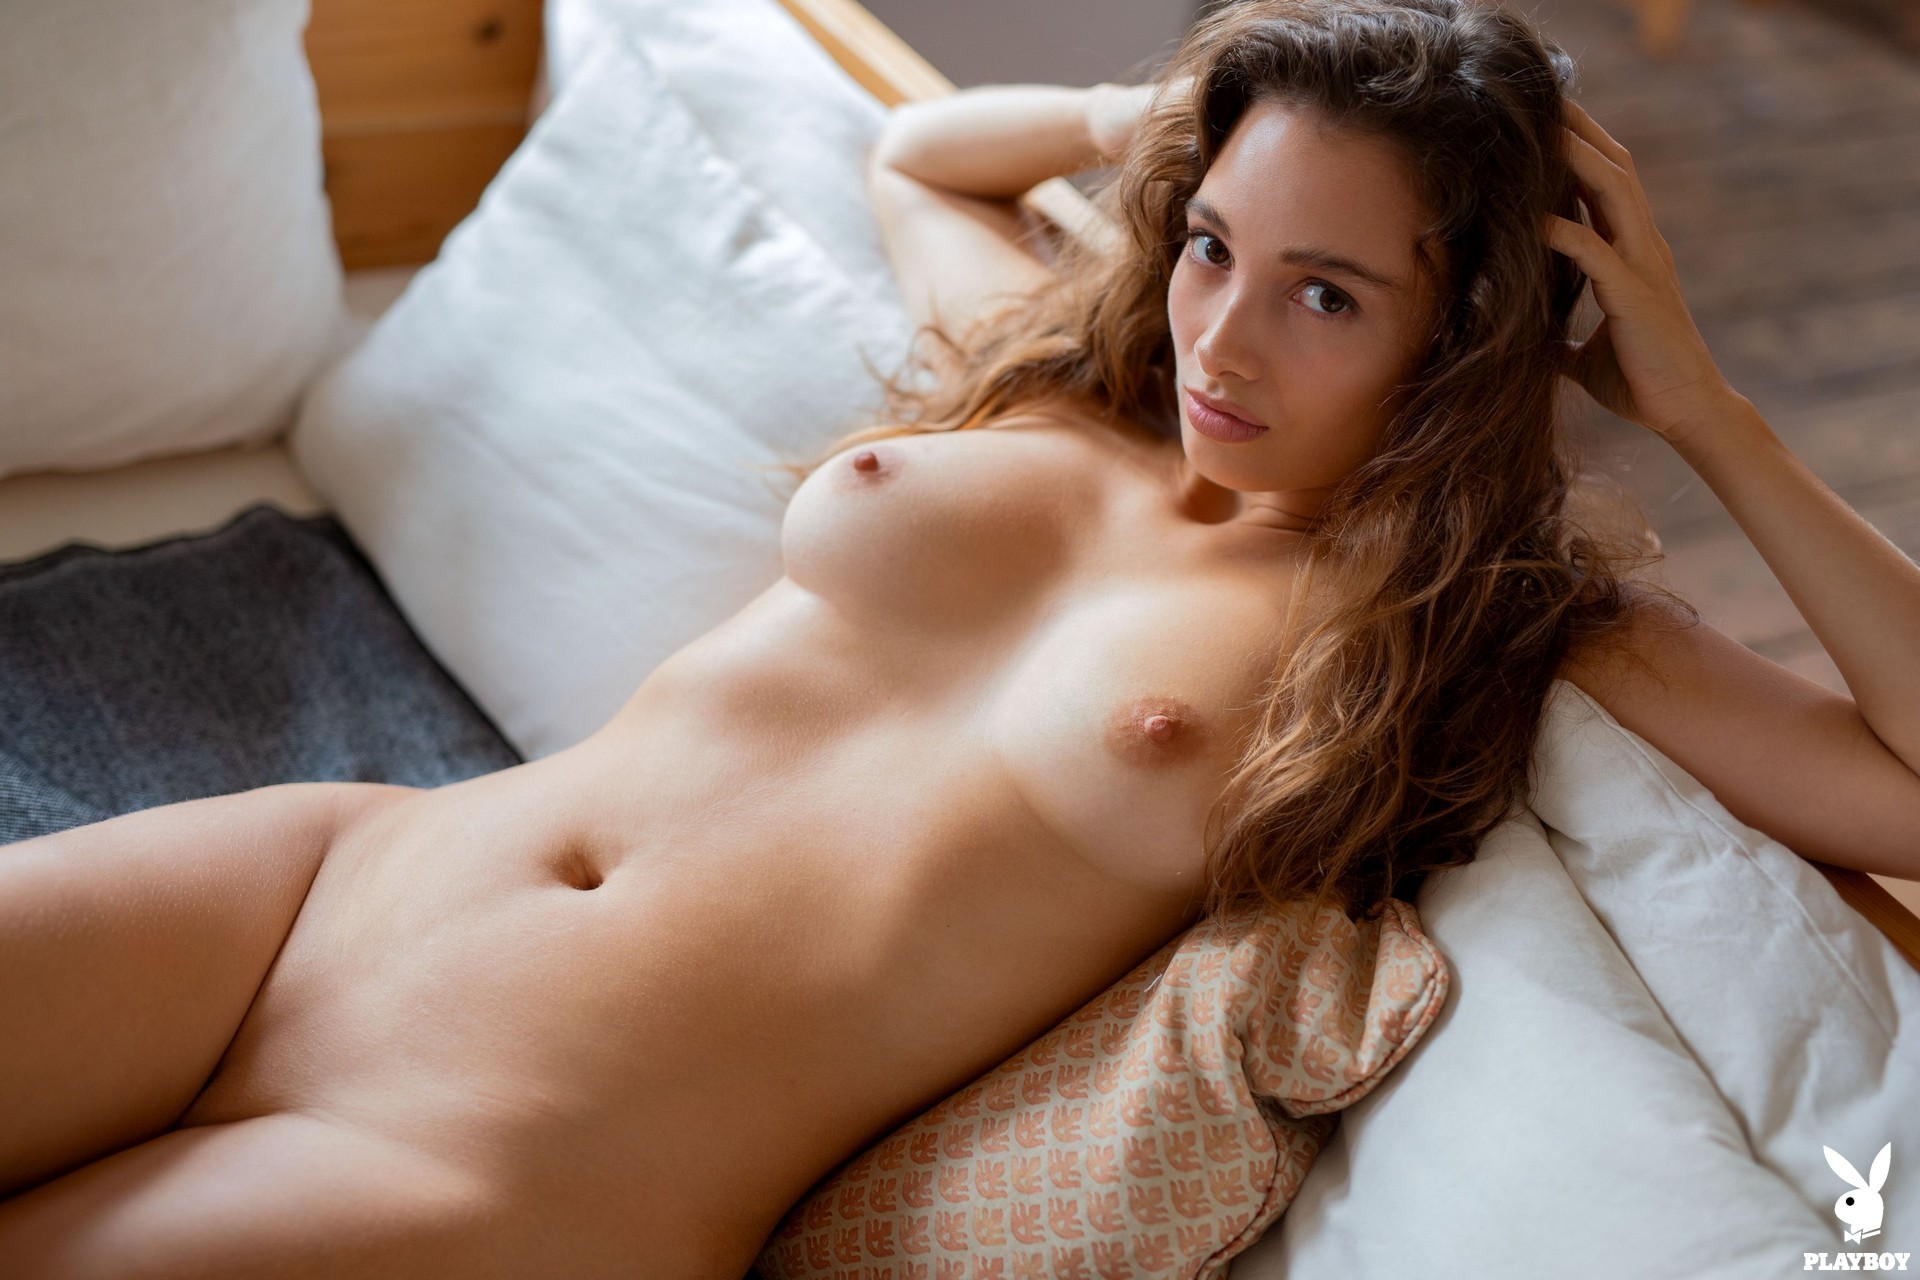 Calypso Muse in Sweet Comforts - Playboy Plus 6